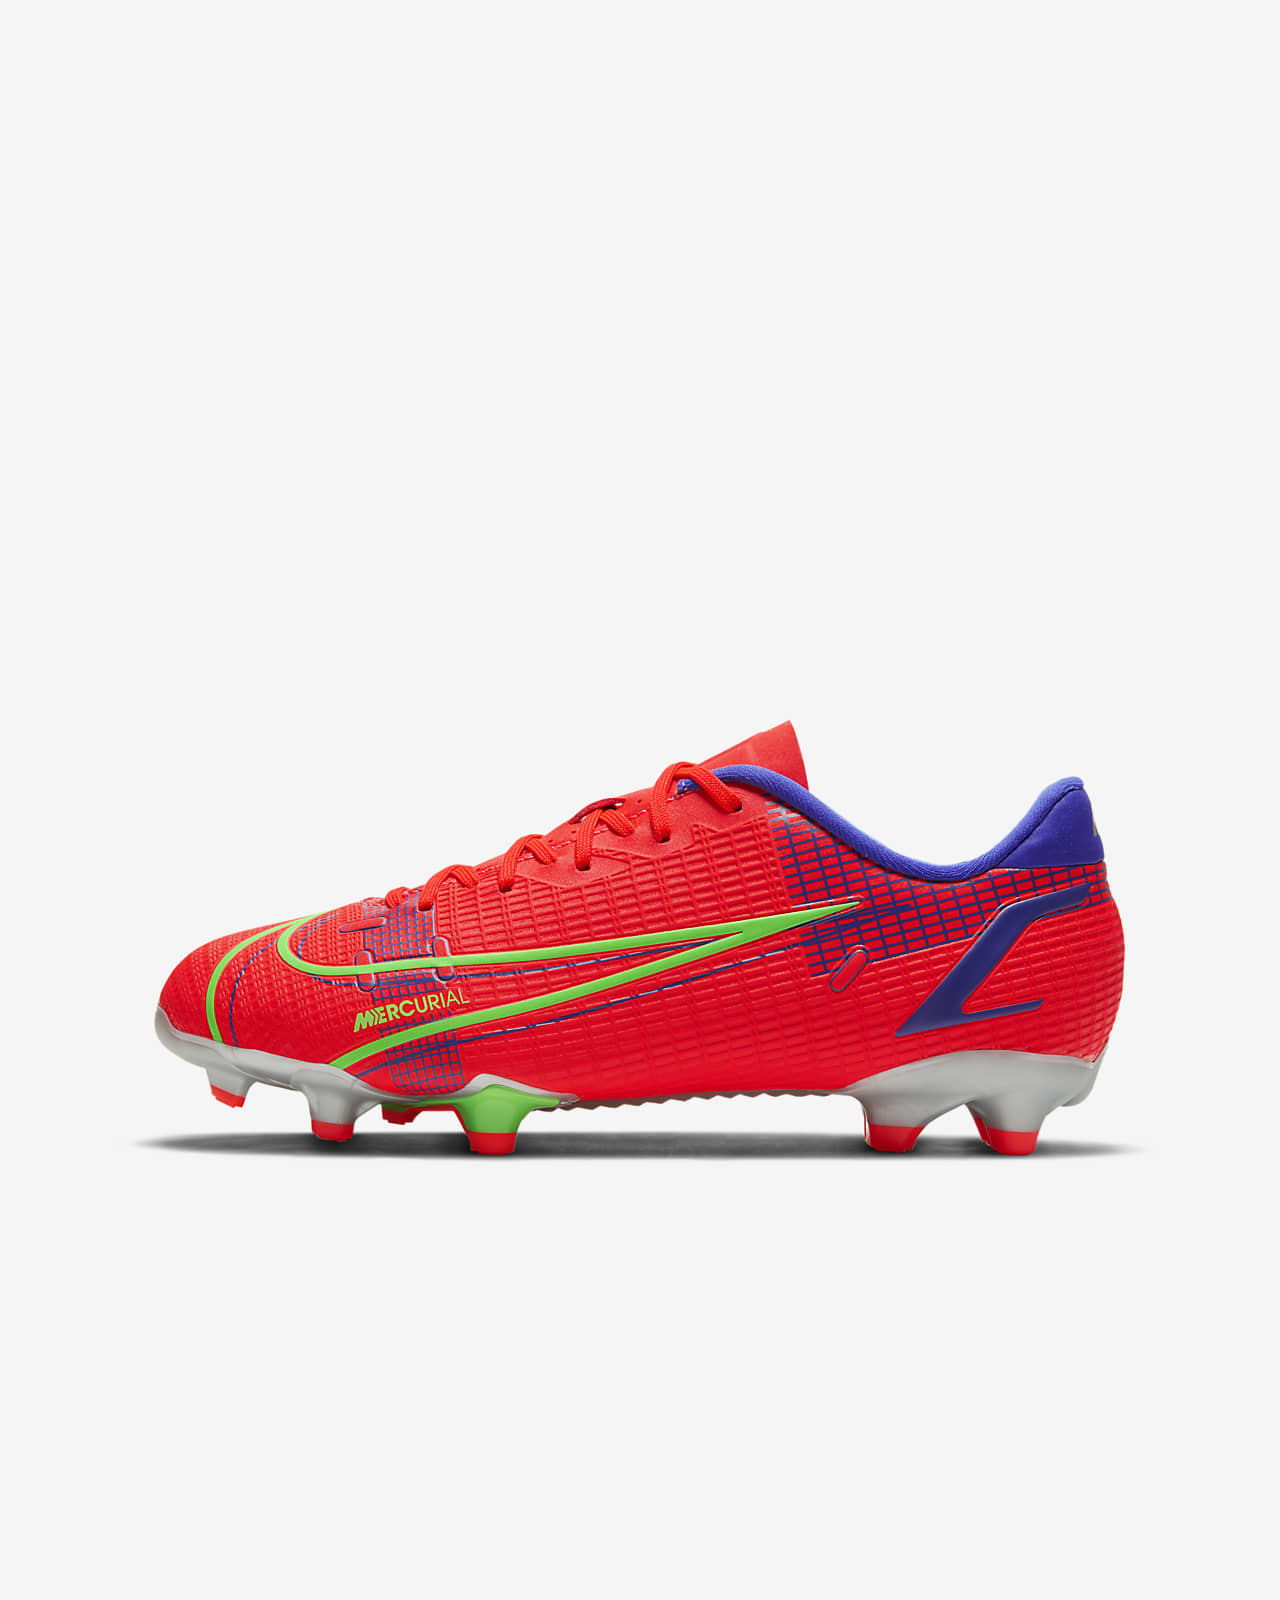 Nike Jr. Mercurial Vapor 14 Academy FG/MG Younger/Older Kids' Multi-Ground Football Boot